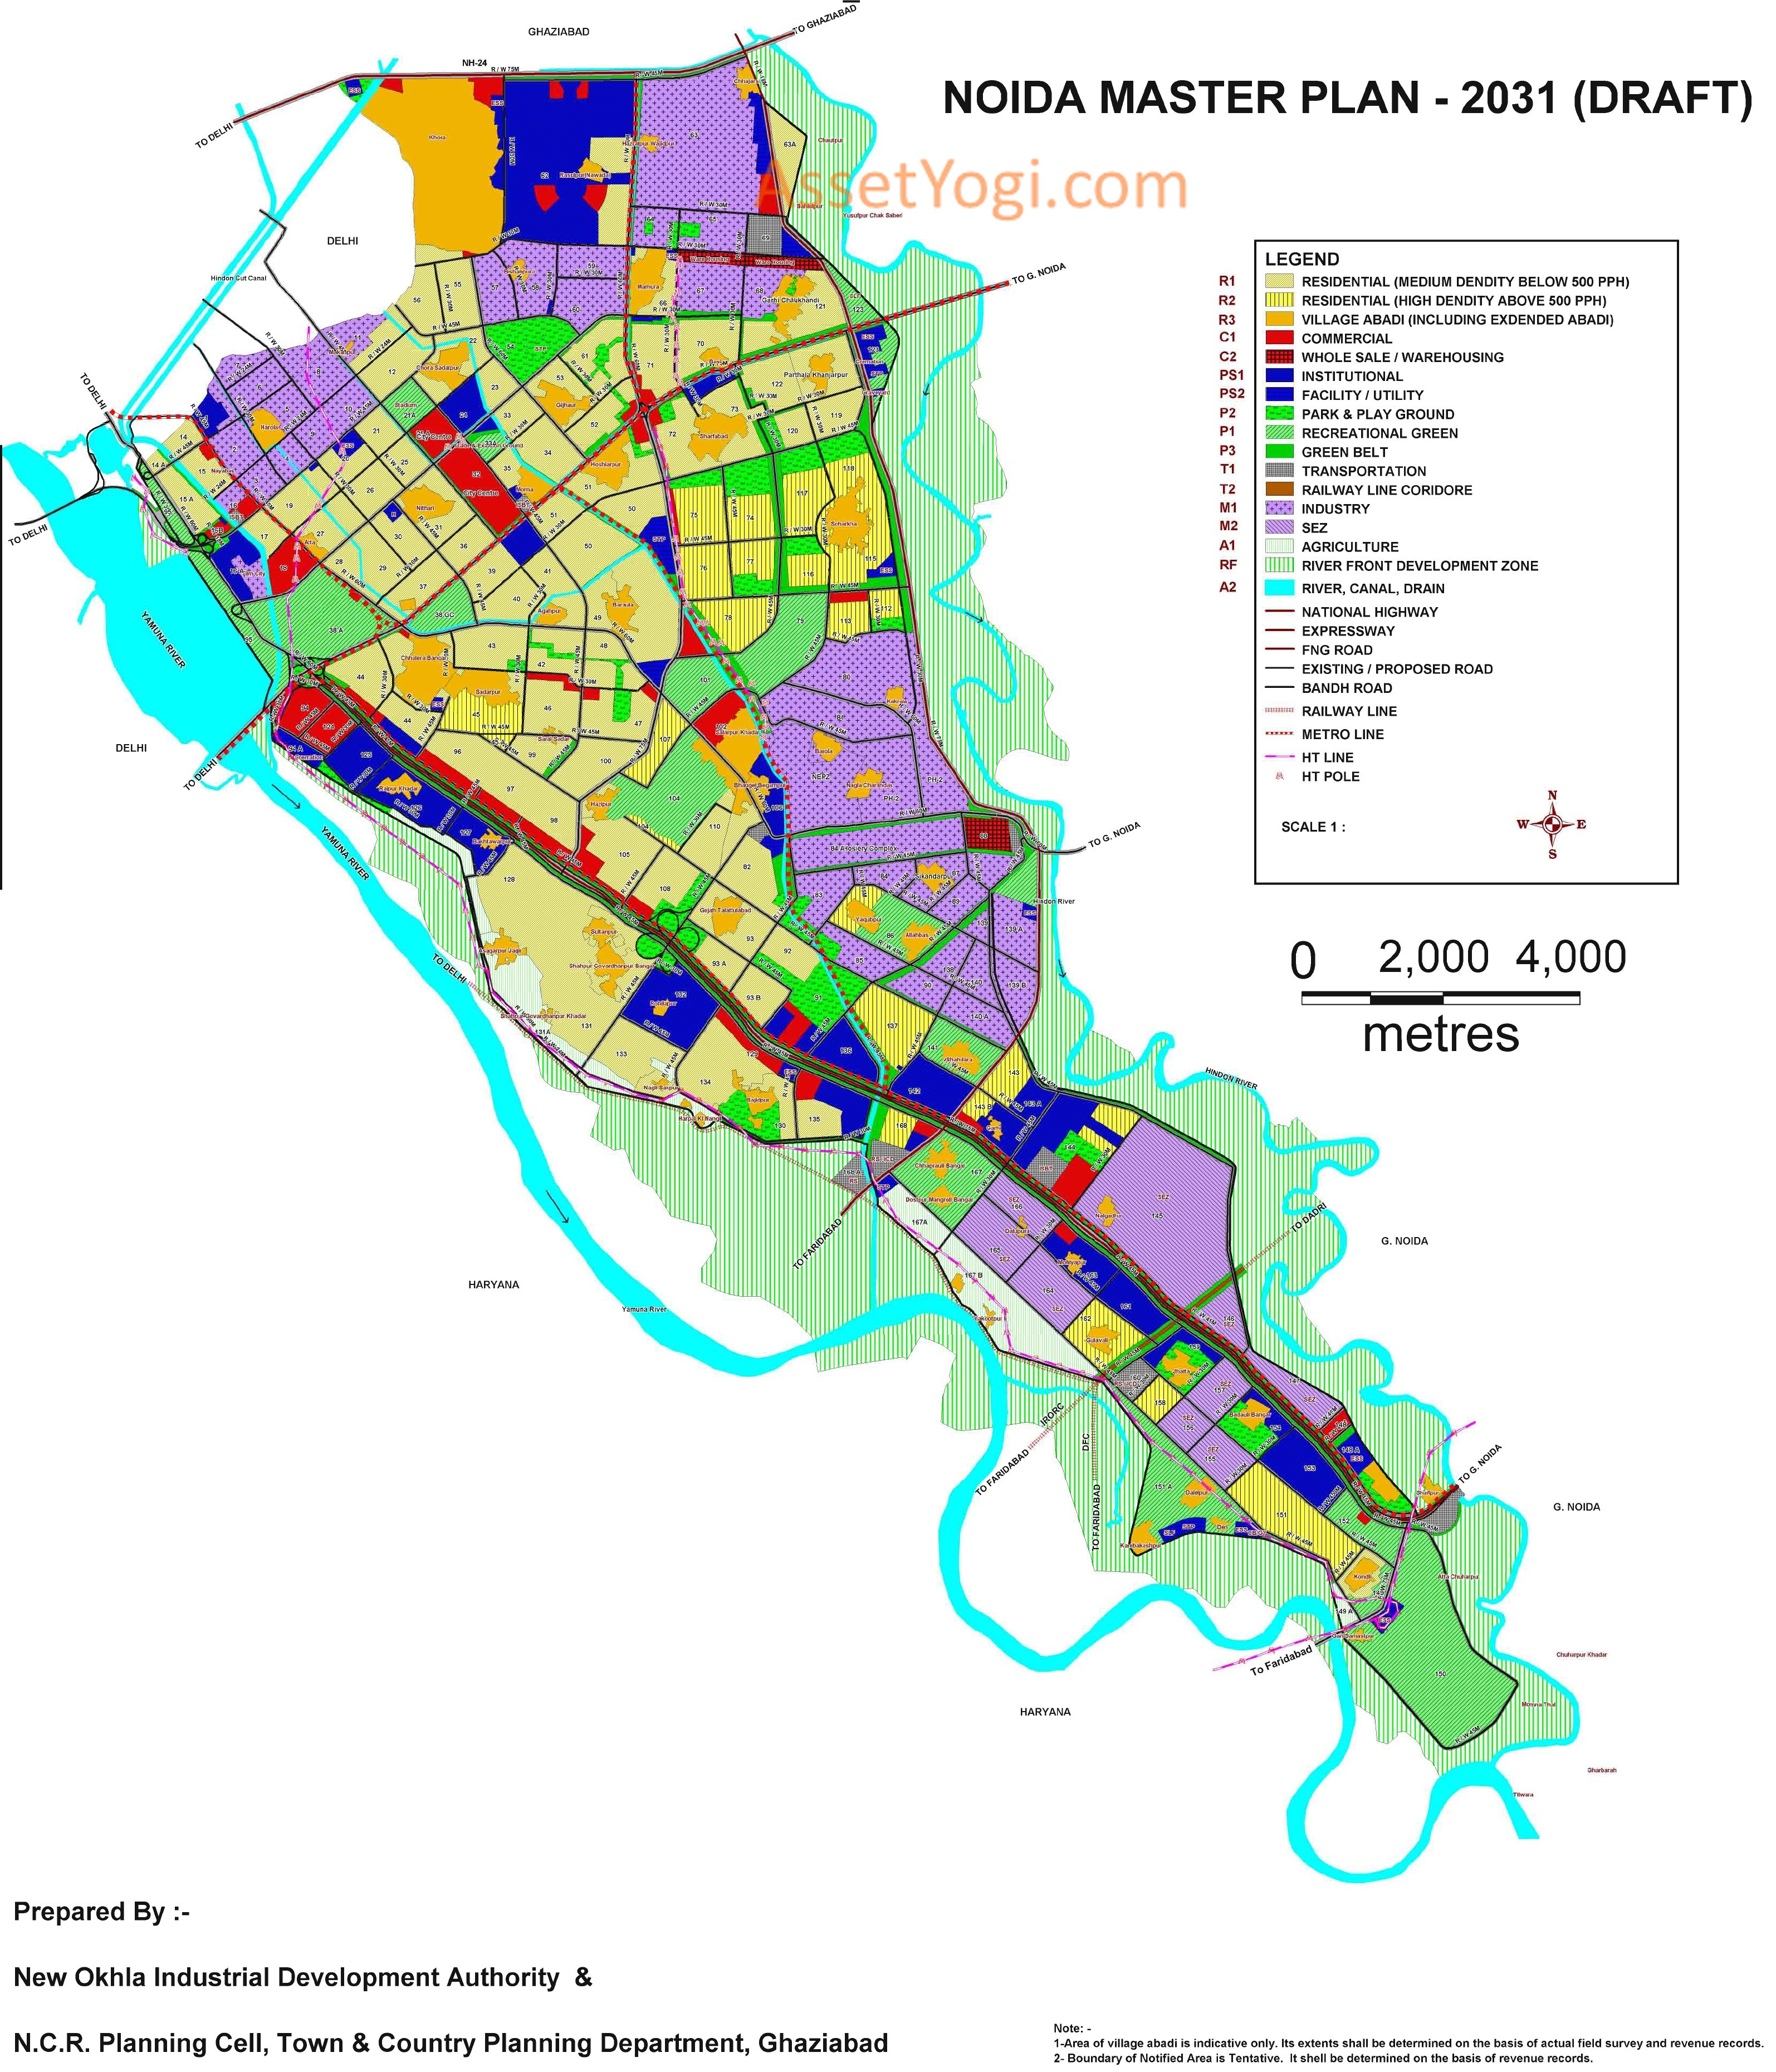 Noida-Master-Plan-2031- Map